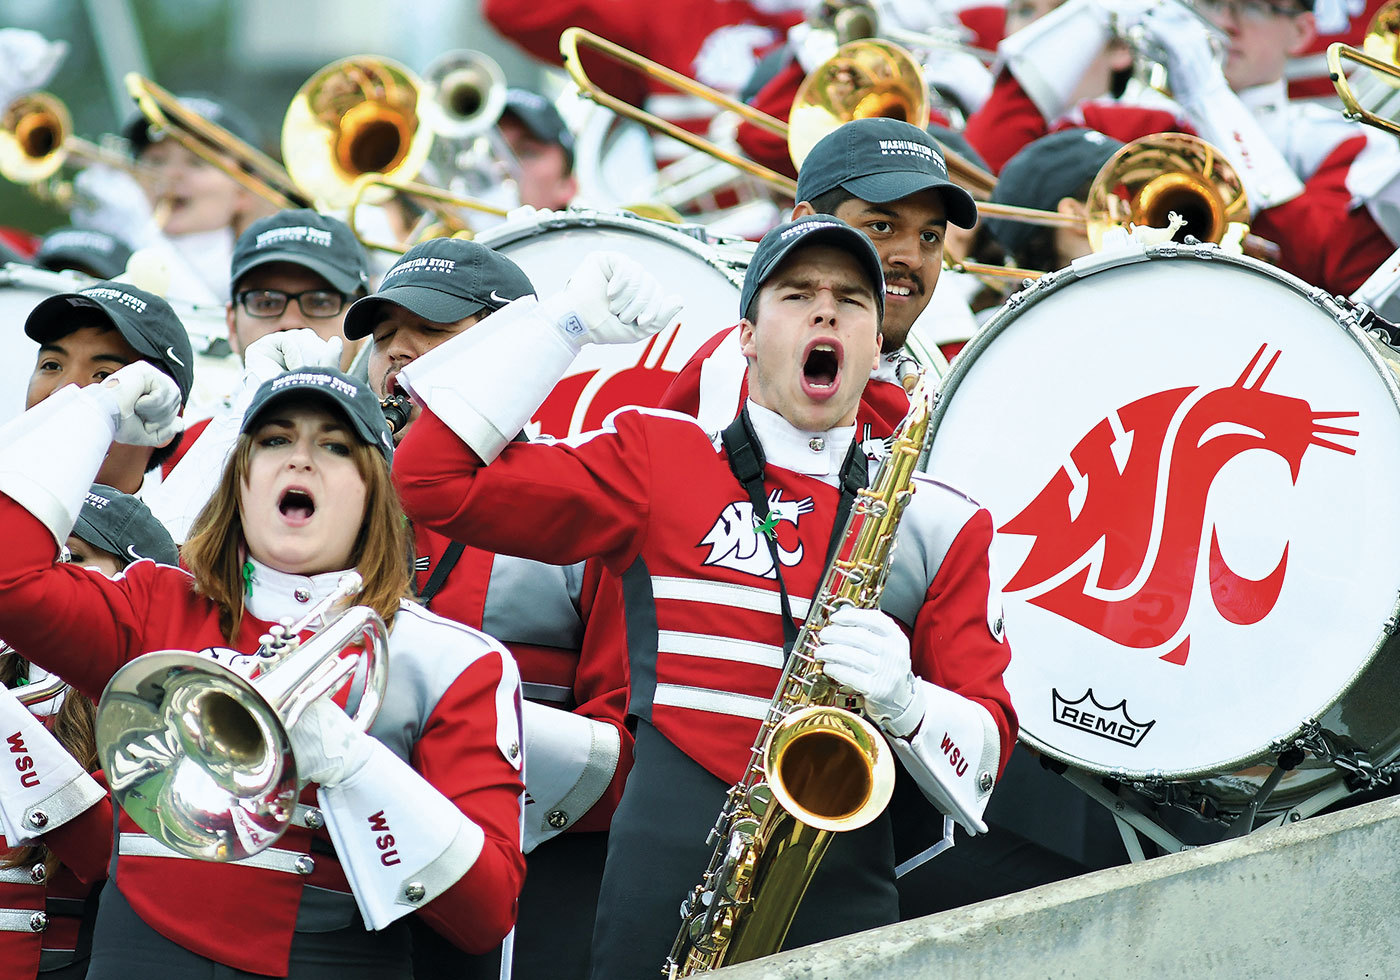 WSU Cougar Marching Band cheering the football team